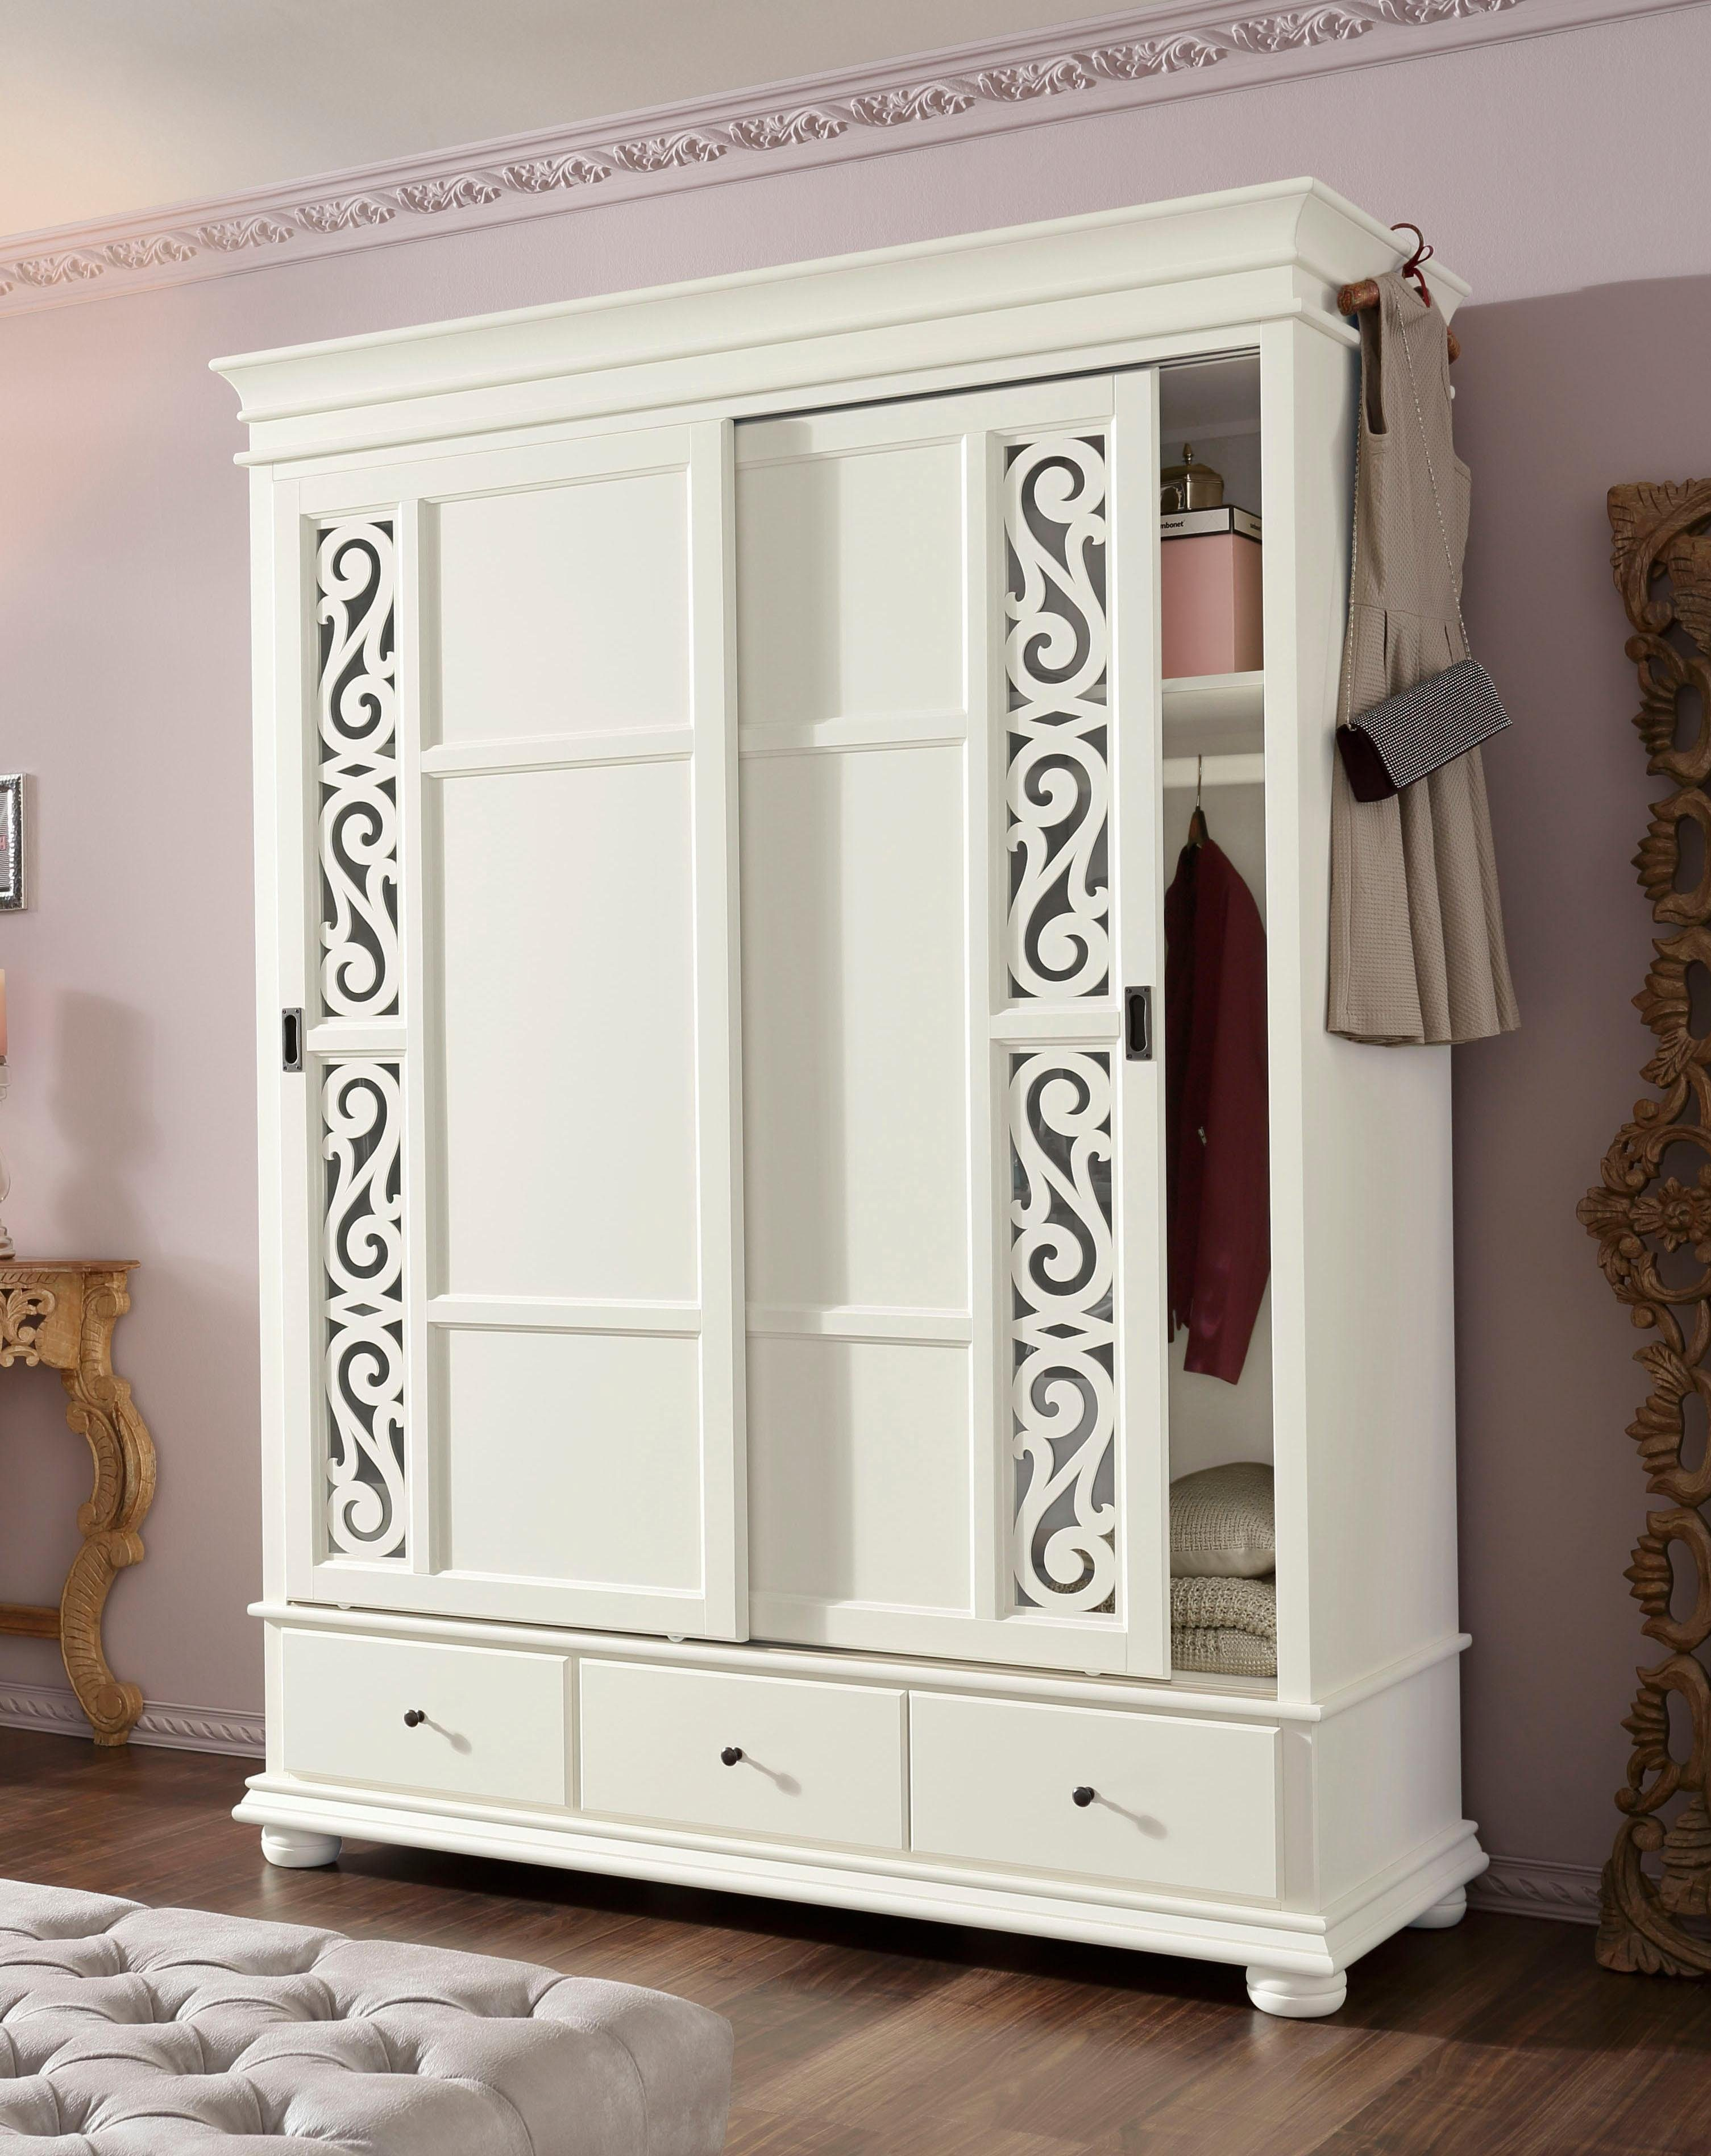 Premium collection by Home affaire Schiebetürenschrank «Arabeske», 2-trg, Breite 160 cm